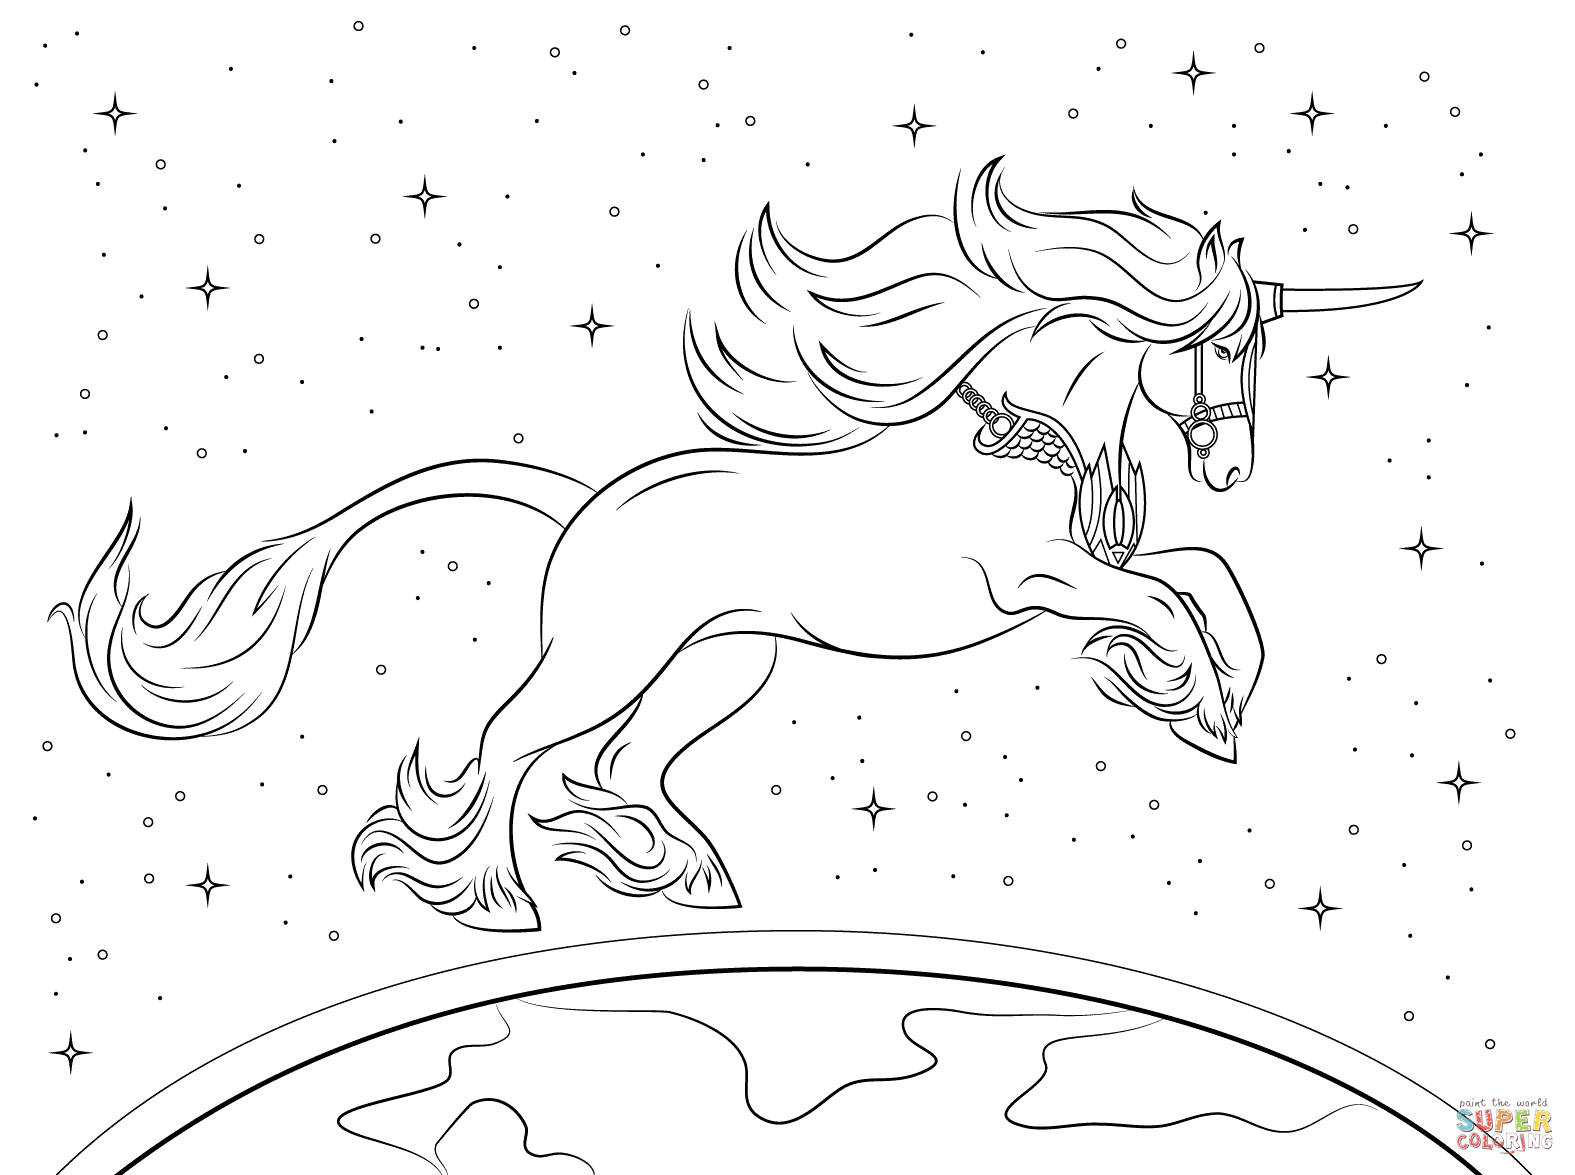 Realistic Unicorn Coloring Pages Download And Print For Free Unicorn Coloring Pages Horse Coloring Pages Space Coloring Pages